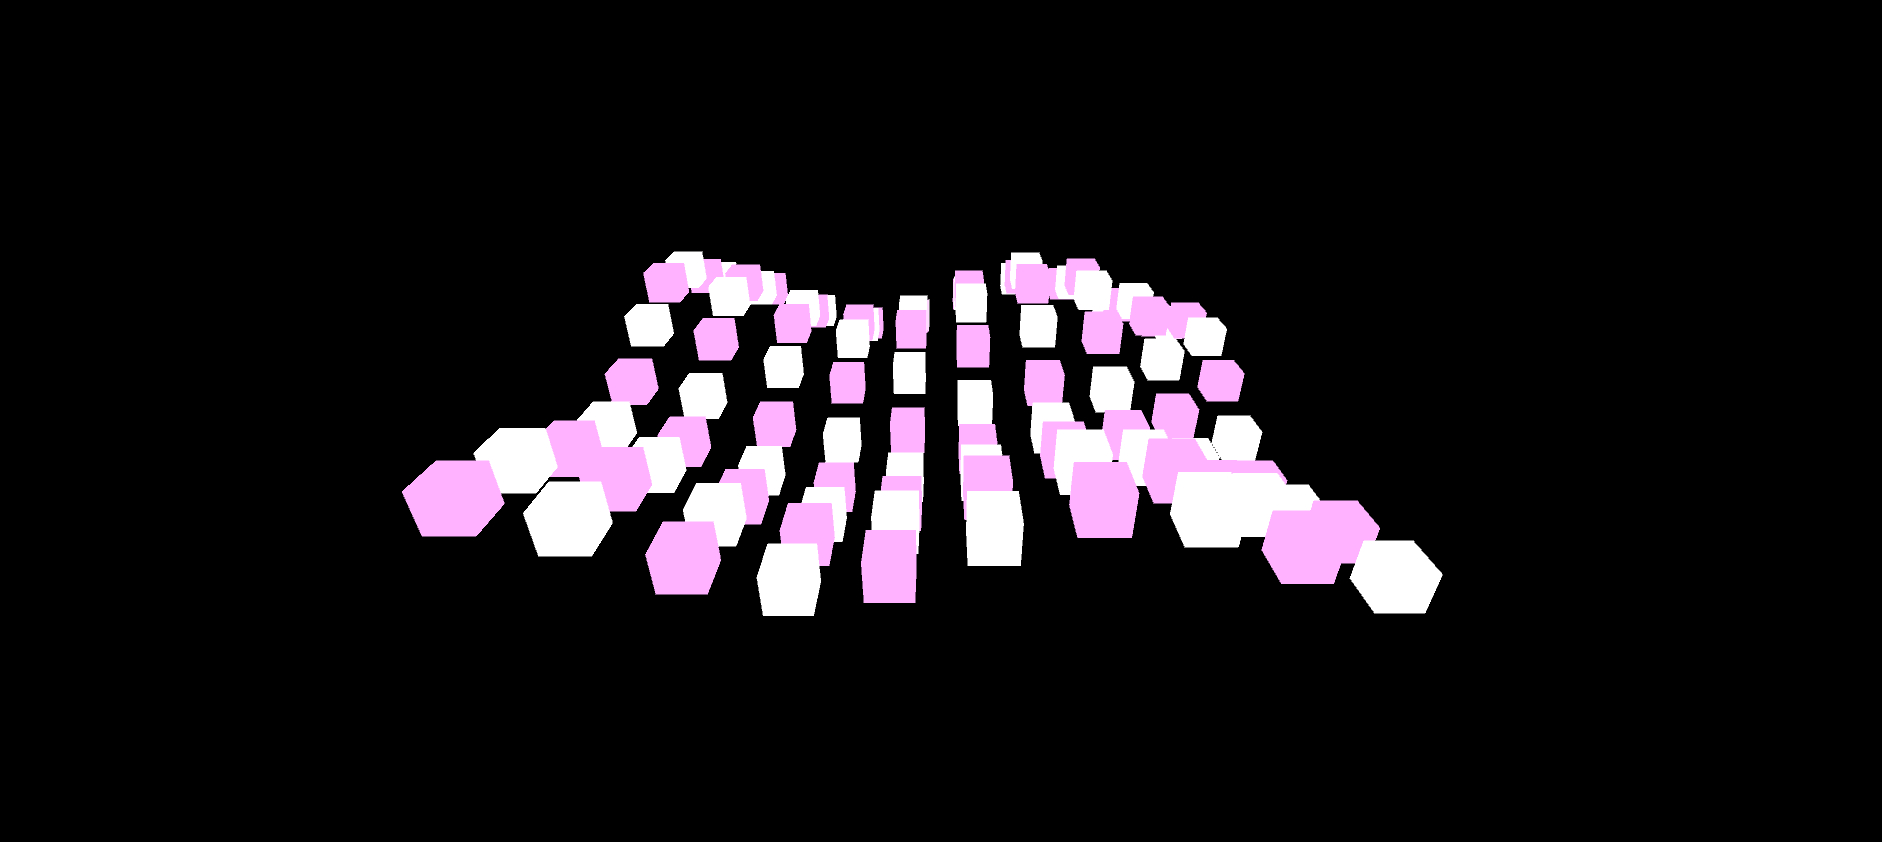 Another segmentation image where white cubes represent the default Layer and pink cubes are on Layer 3. The code provided supports both versions (just not at the same time).